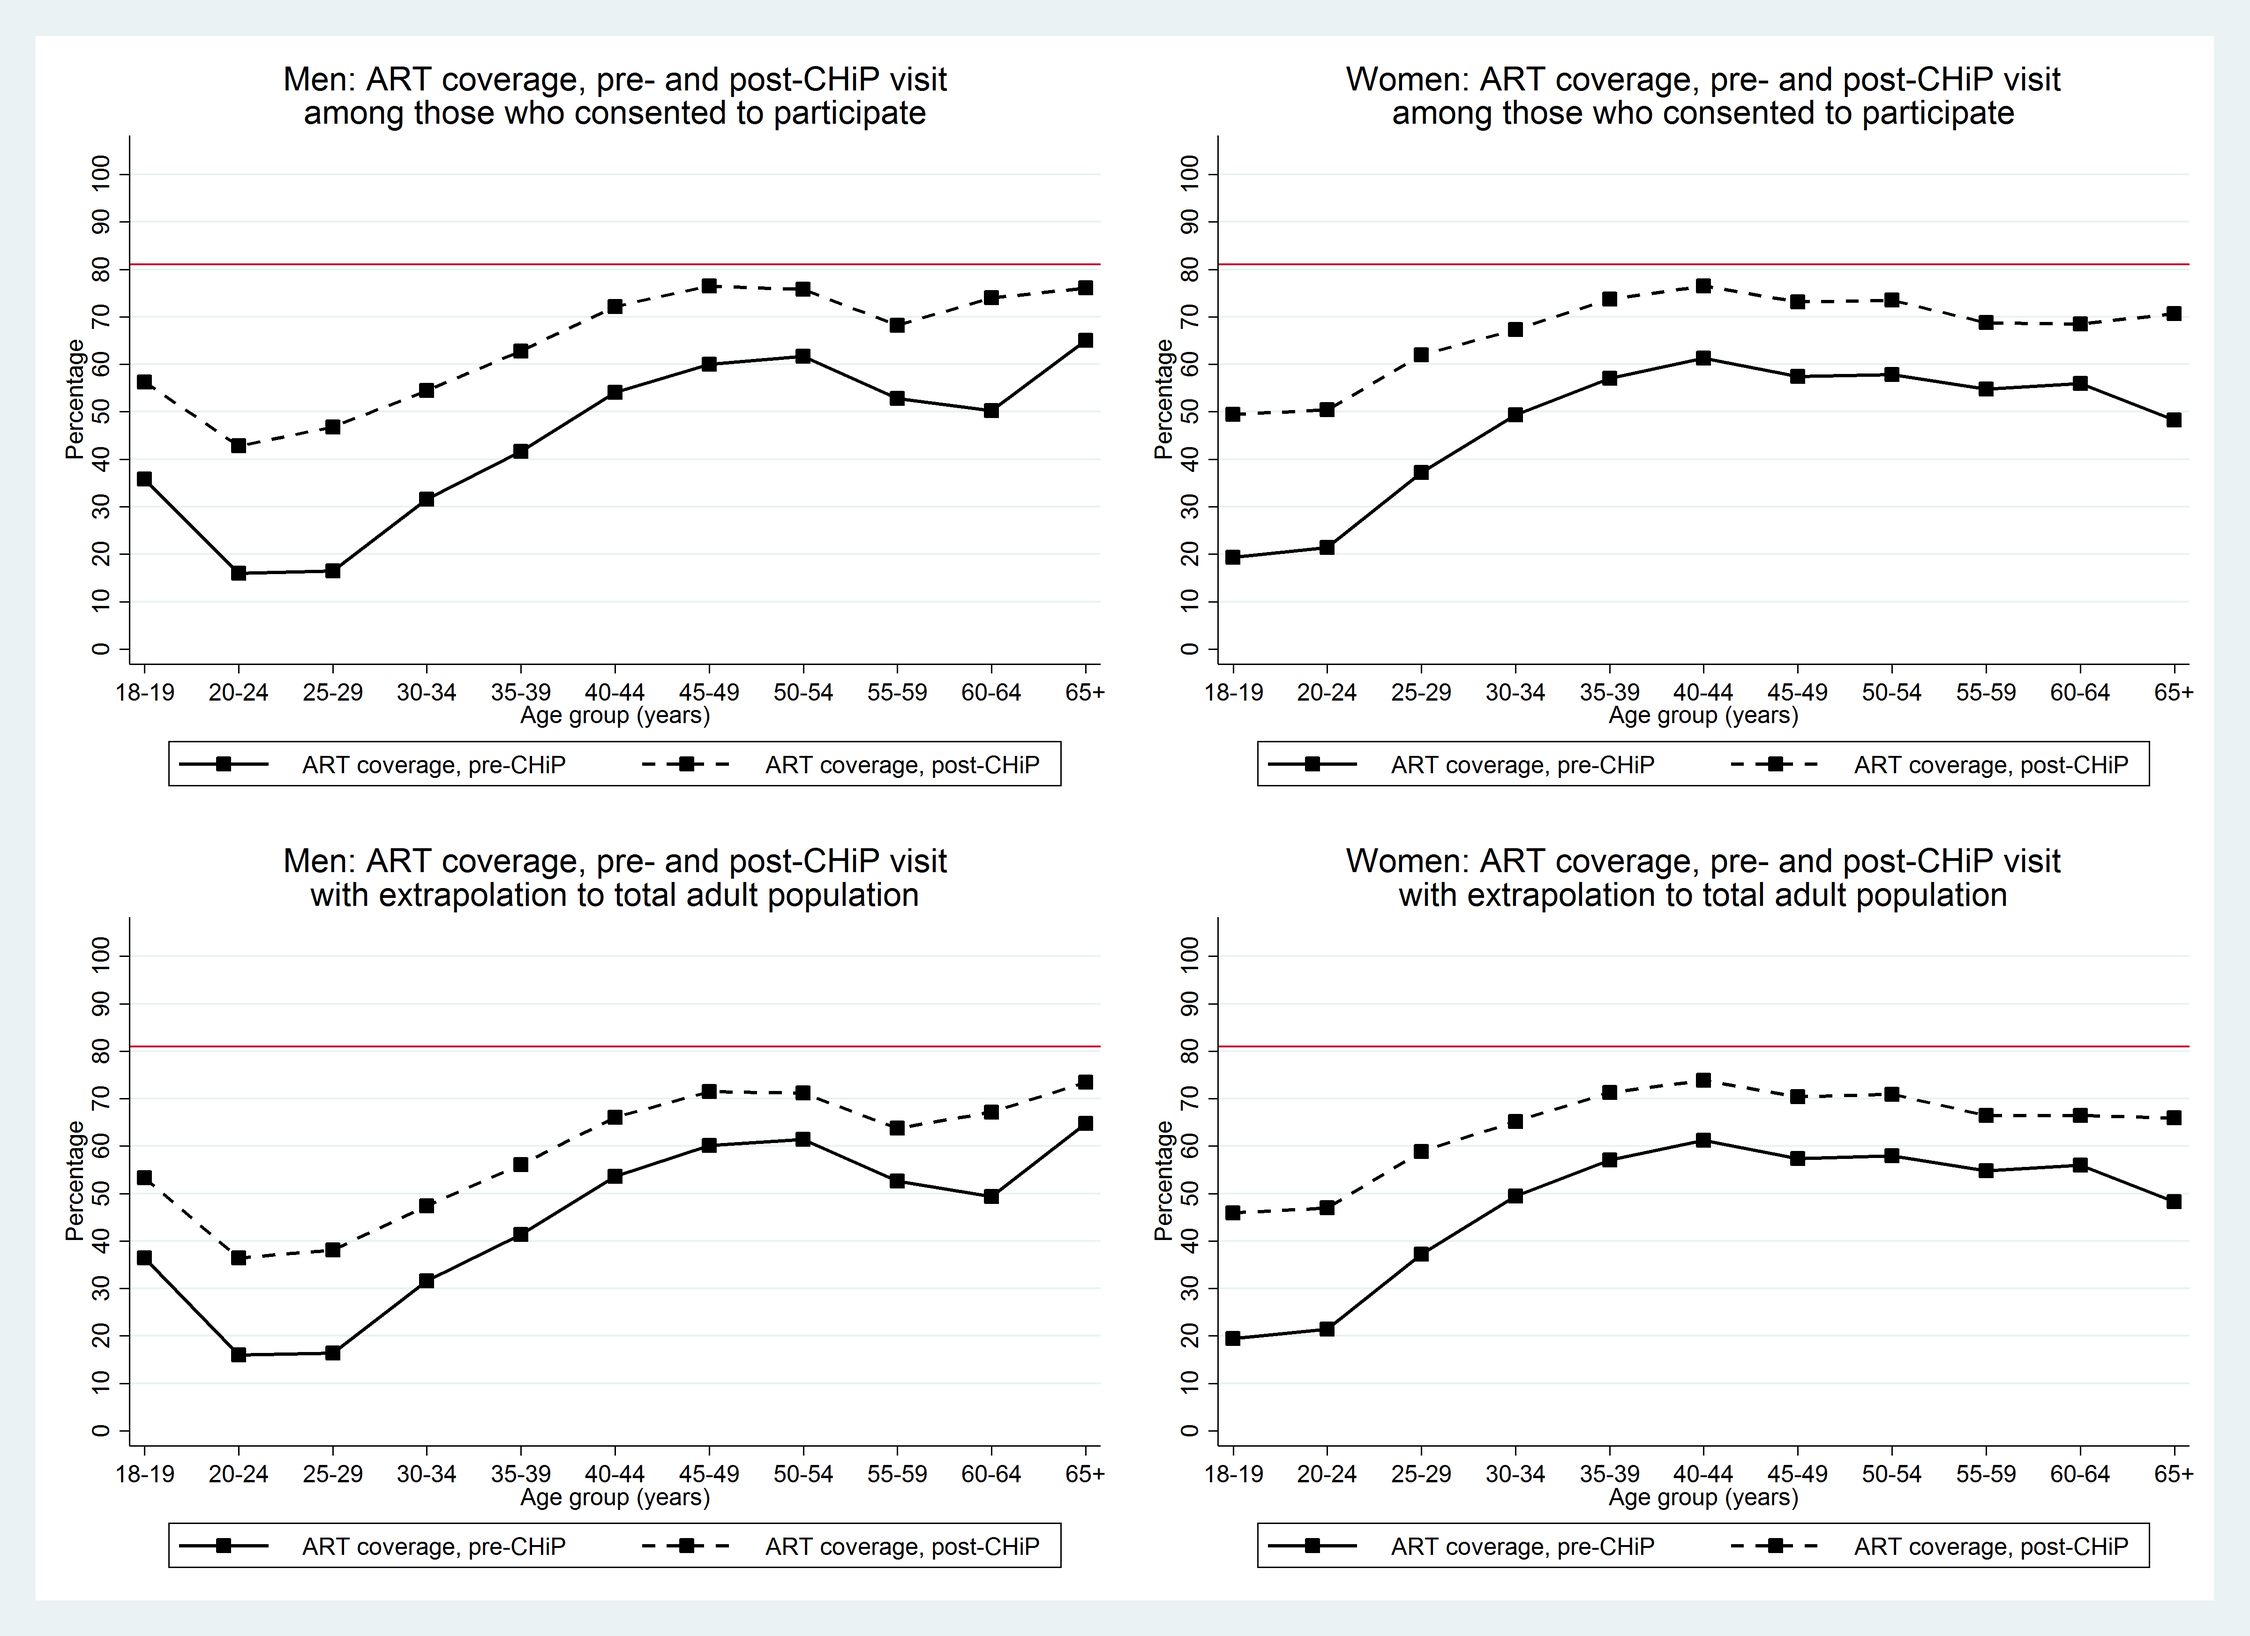 Overall estimates of proportion of HIV+ adults on ART by age group and sex in those consenting to the PopART intervention and extrapolated to the total adult population.